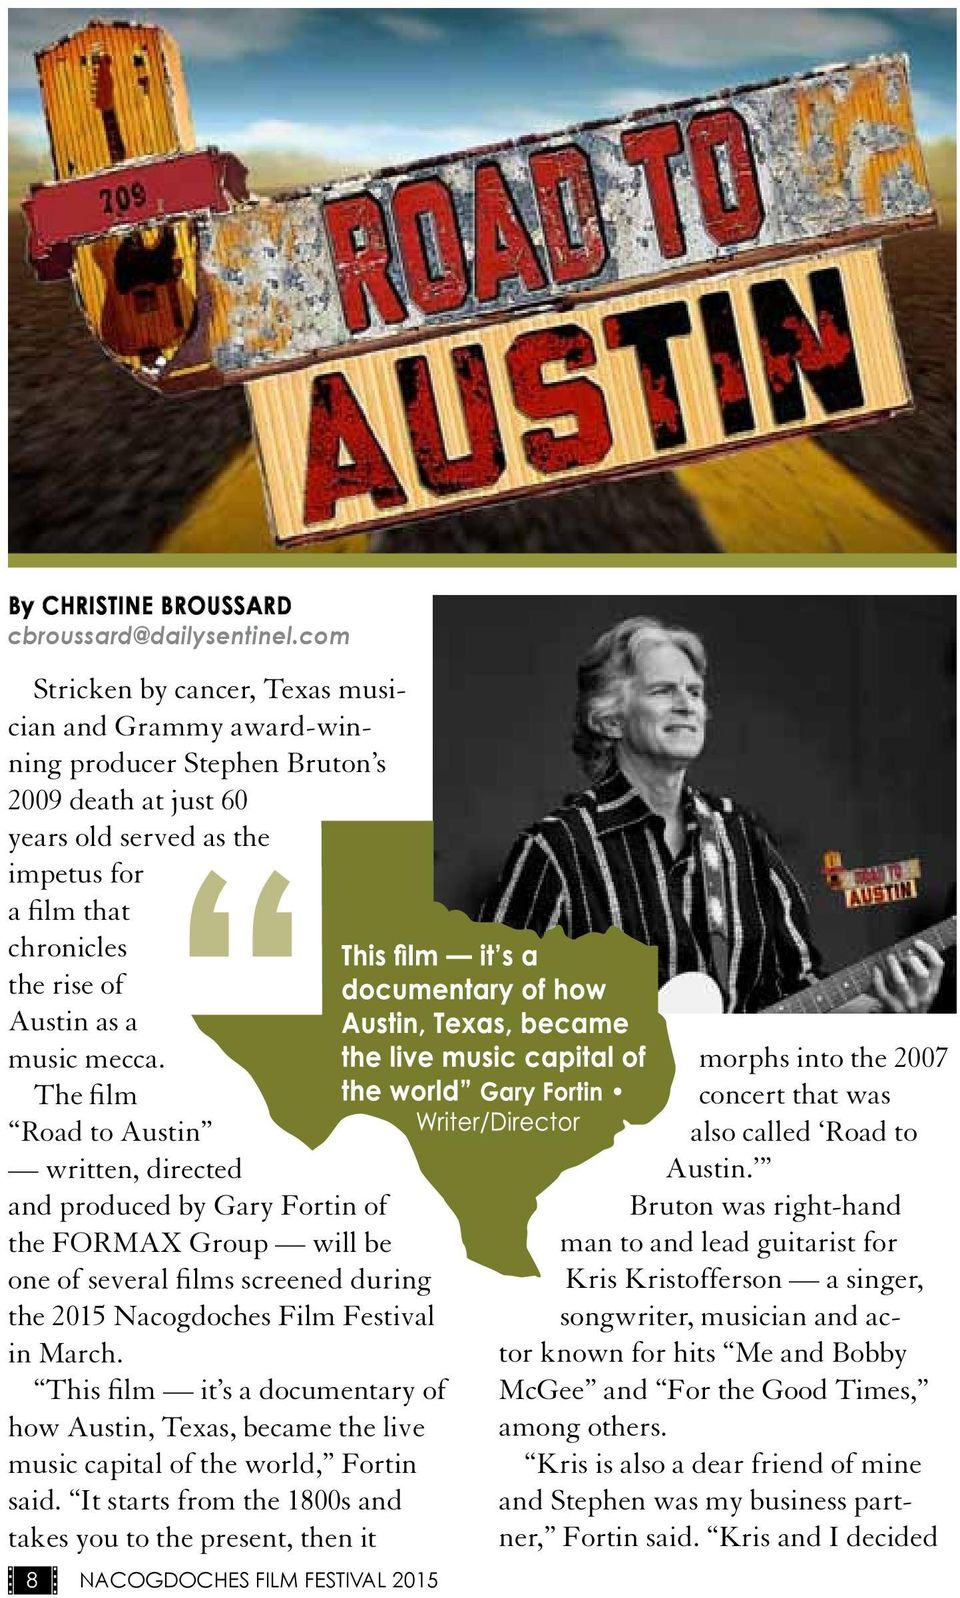 music mecca. The film Road to Austin written, directed and produced by Gary Fortin of the FORMAX Group will be one of several films screened during the 2015 Nacogdoches Film Festival in March.